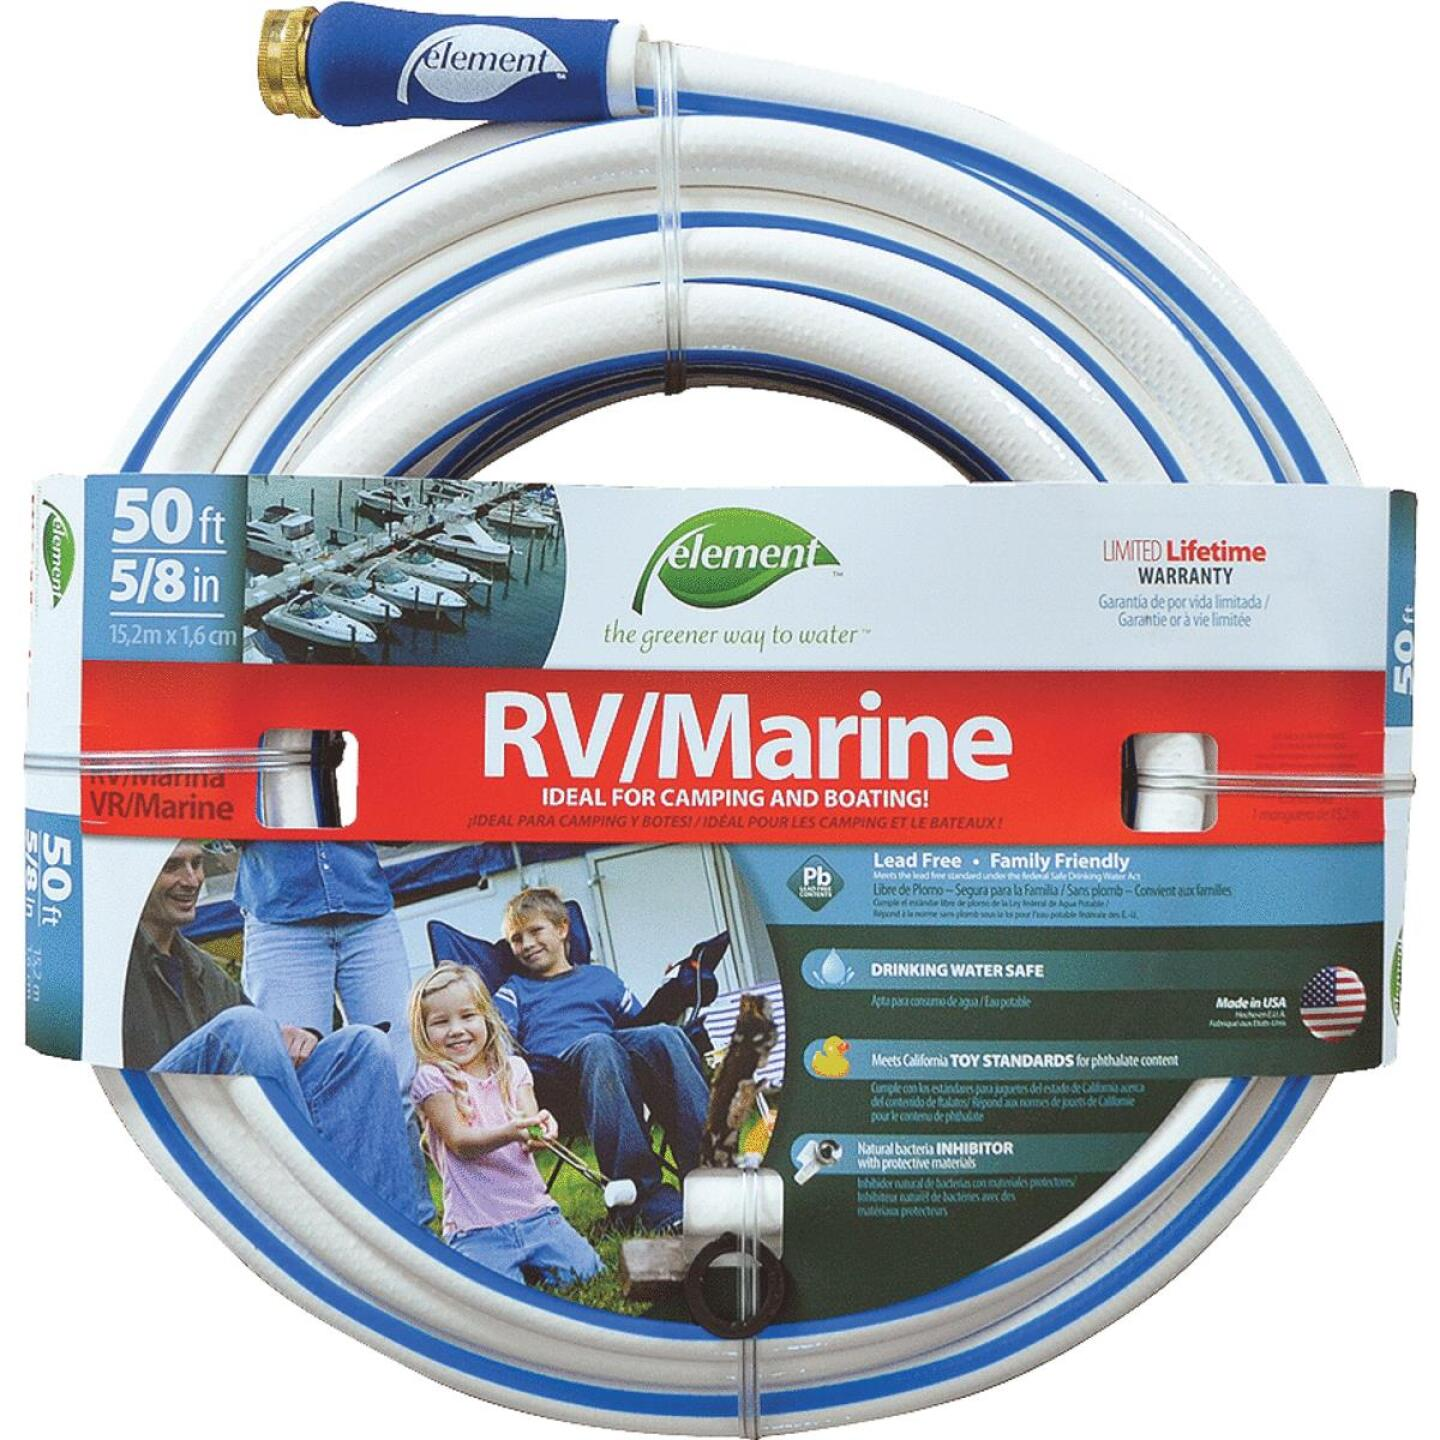 Element 5/8 In. Dia. x 50 Ft. L. Drinking Water Safe RV/Marine Hose Image 1